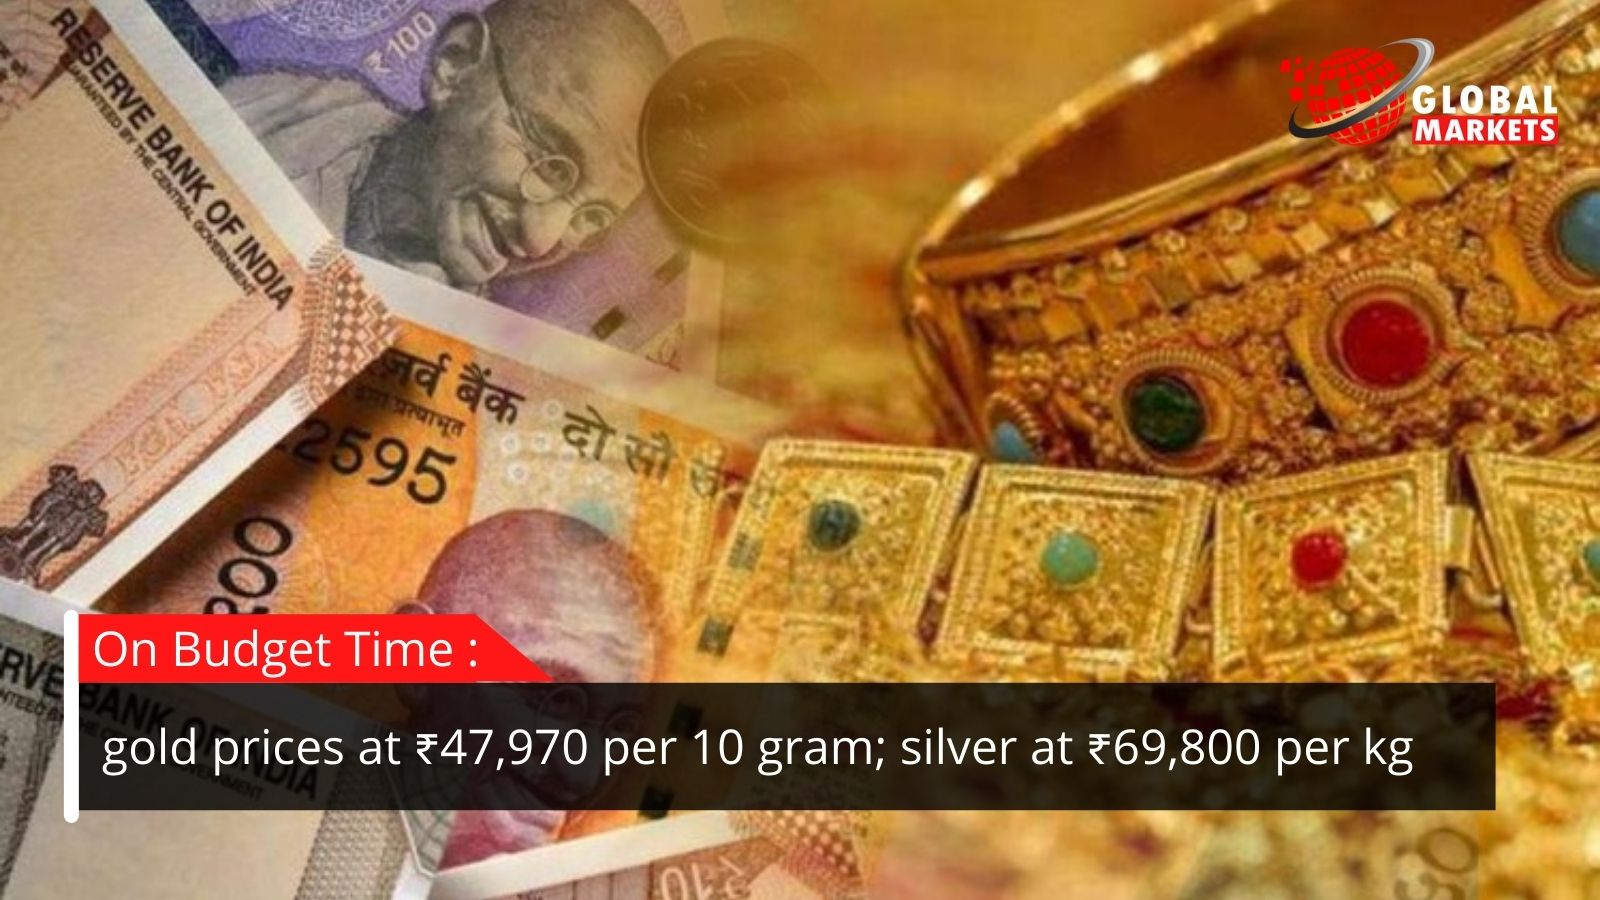 On Budget: gold costs at Rs.47,970 per 10 gram and silver at Rs.69,800 per kg